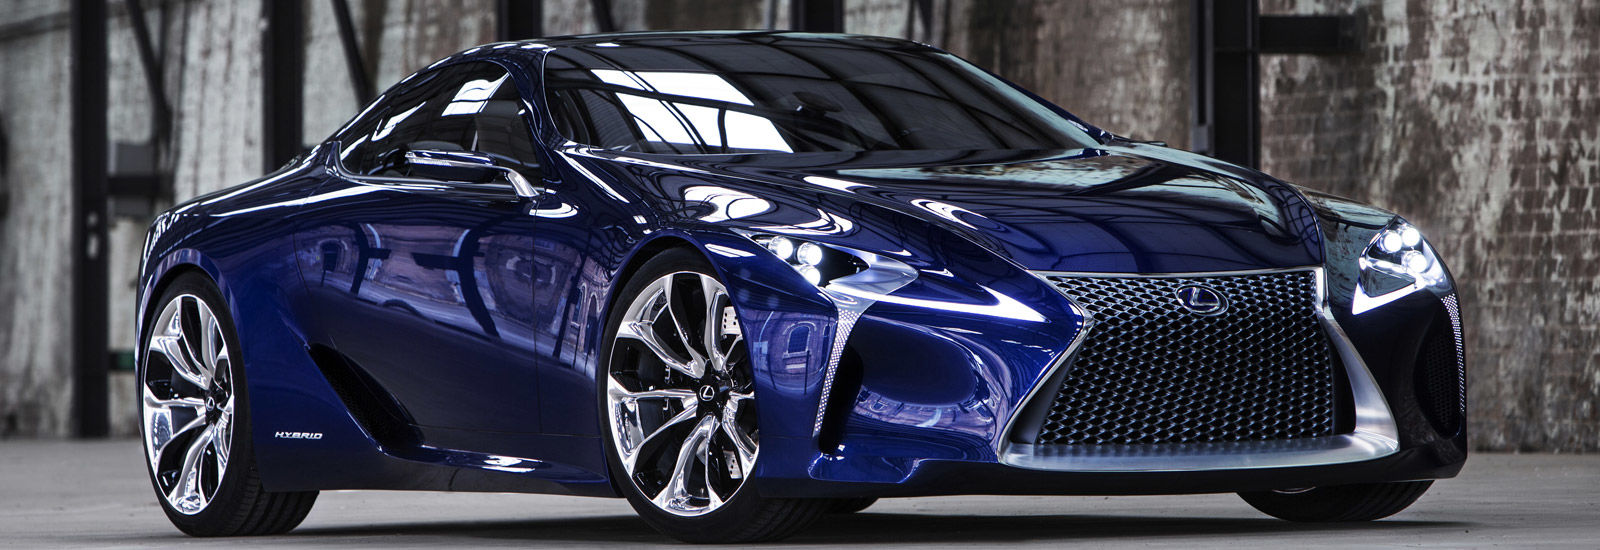 2018 lexus lc f price specs and release date carwow. Black Bedroom Furniture Sets. Home Design Ideas